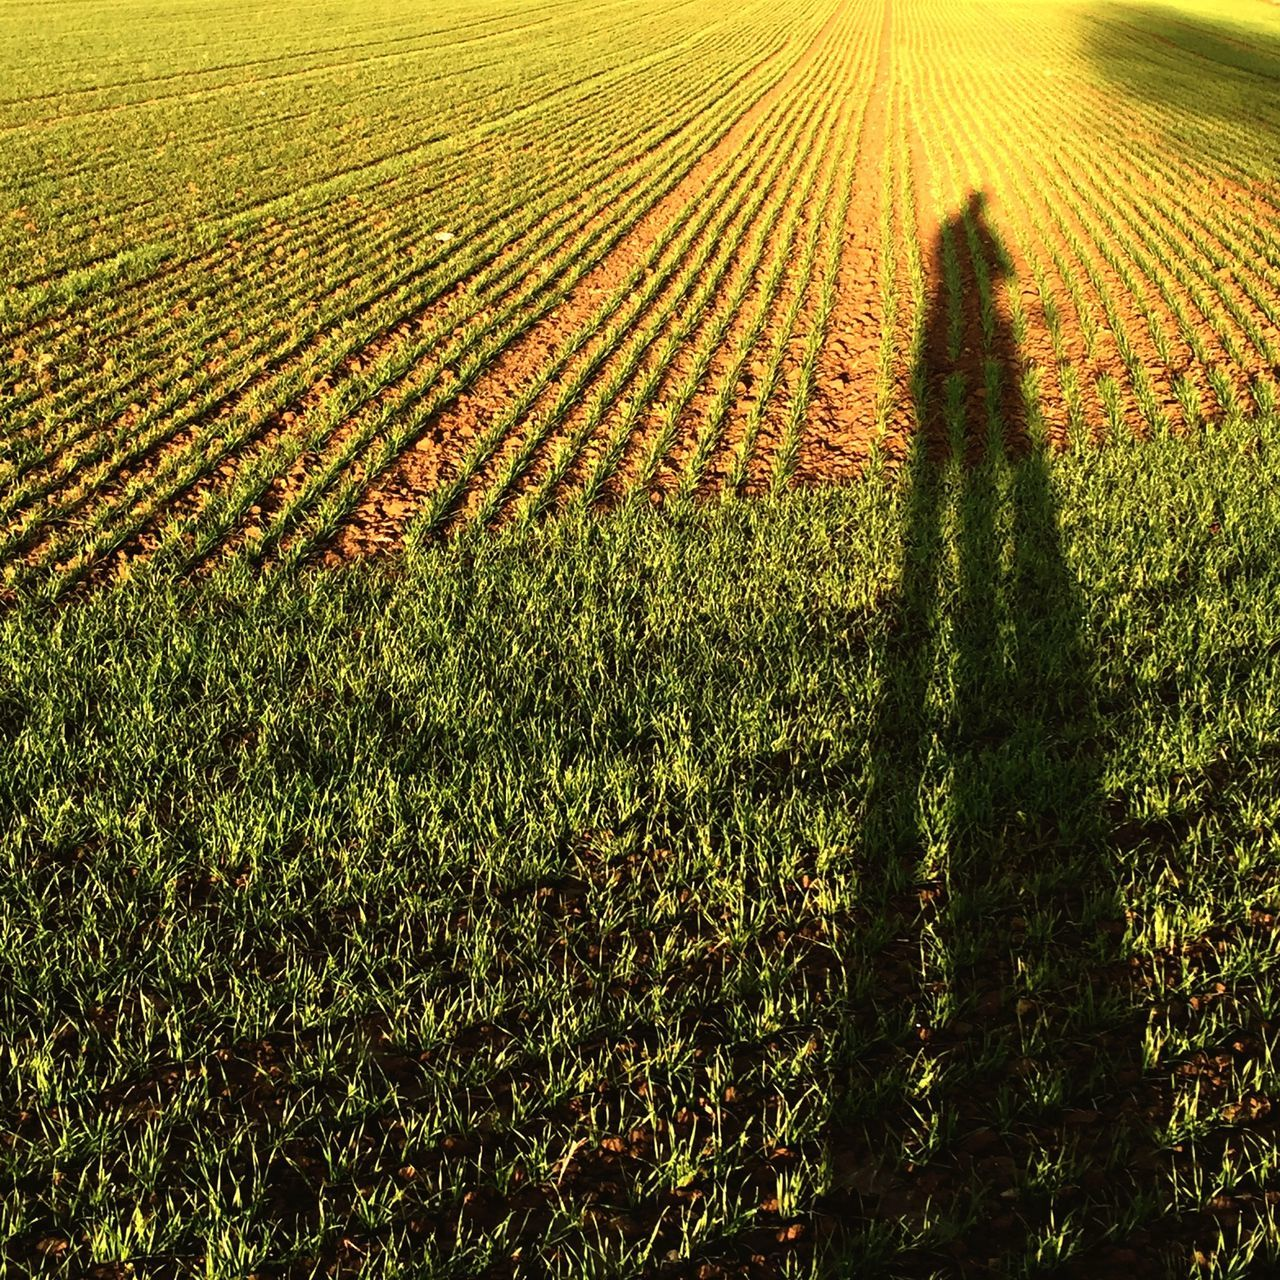 agriculture, growth, field, nature, focus on shadow, sunlight, real people, one person, shadow, outdoors, rural scene, standing, day, beauty in nature, men, working, grass, people